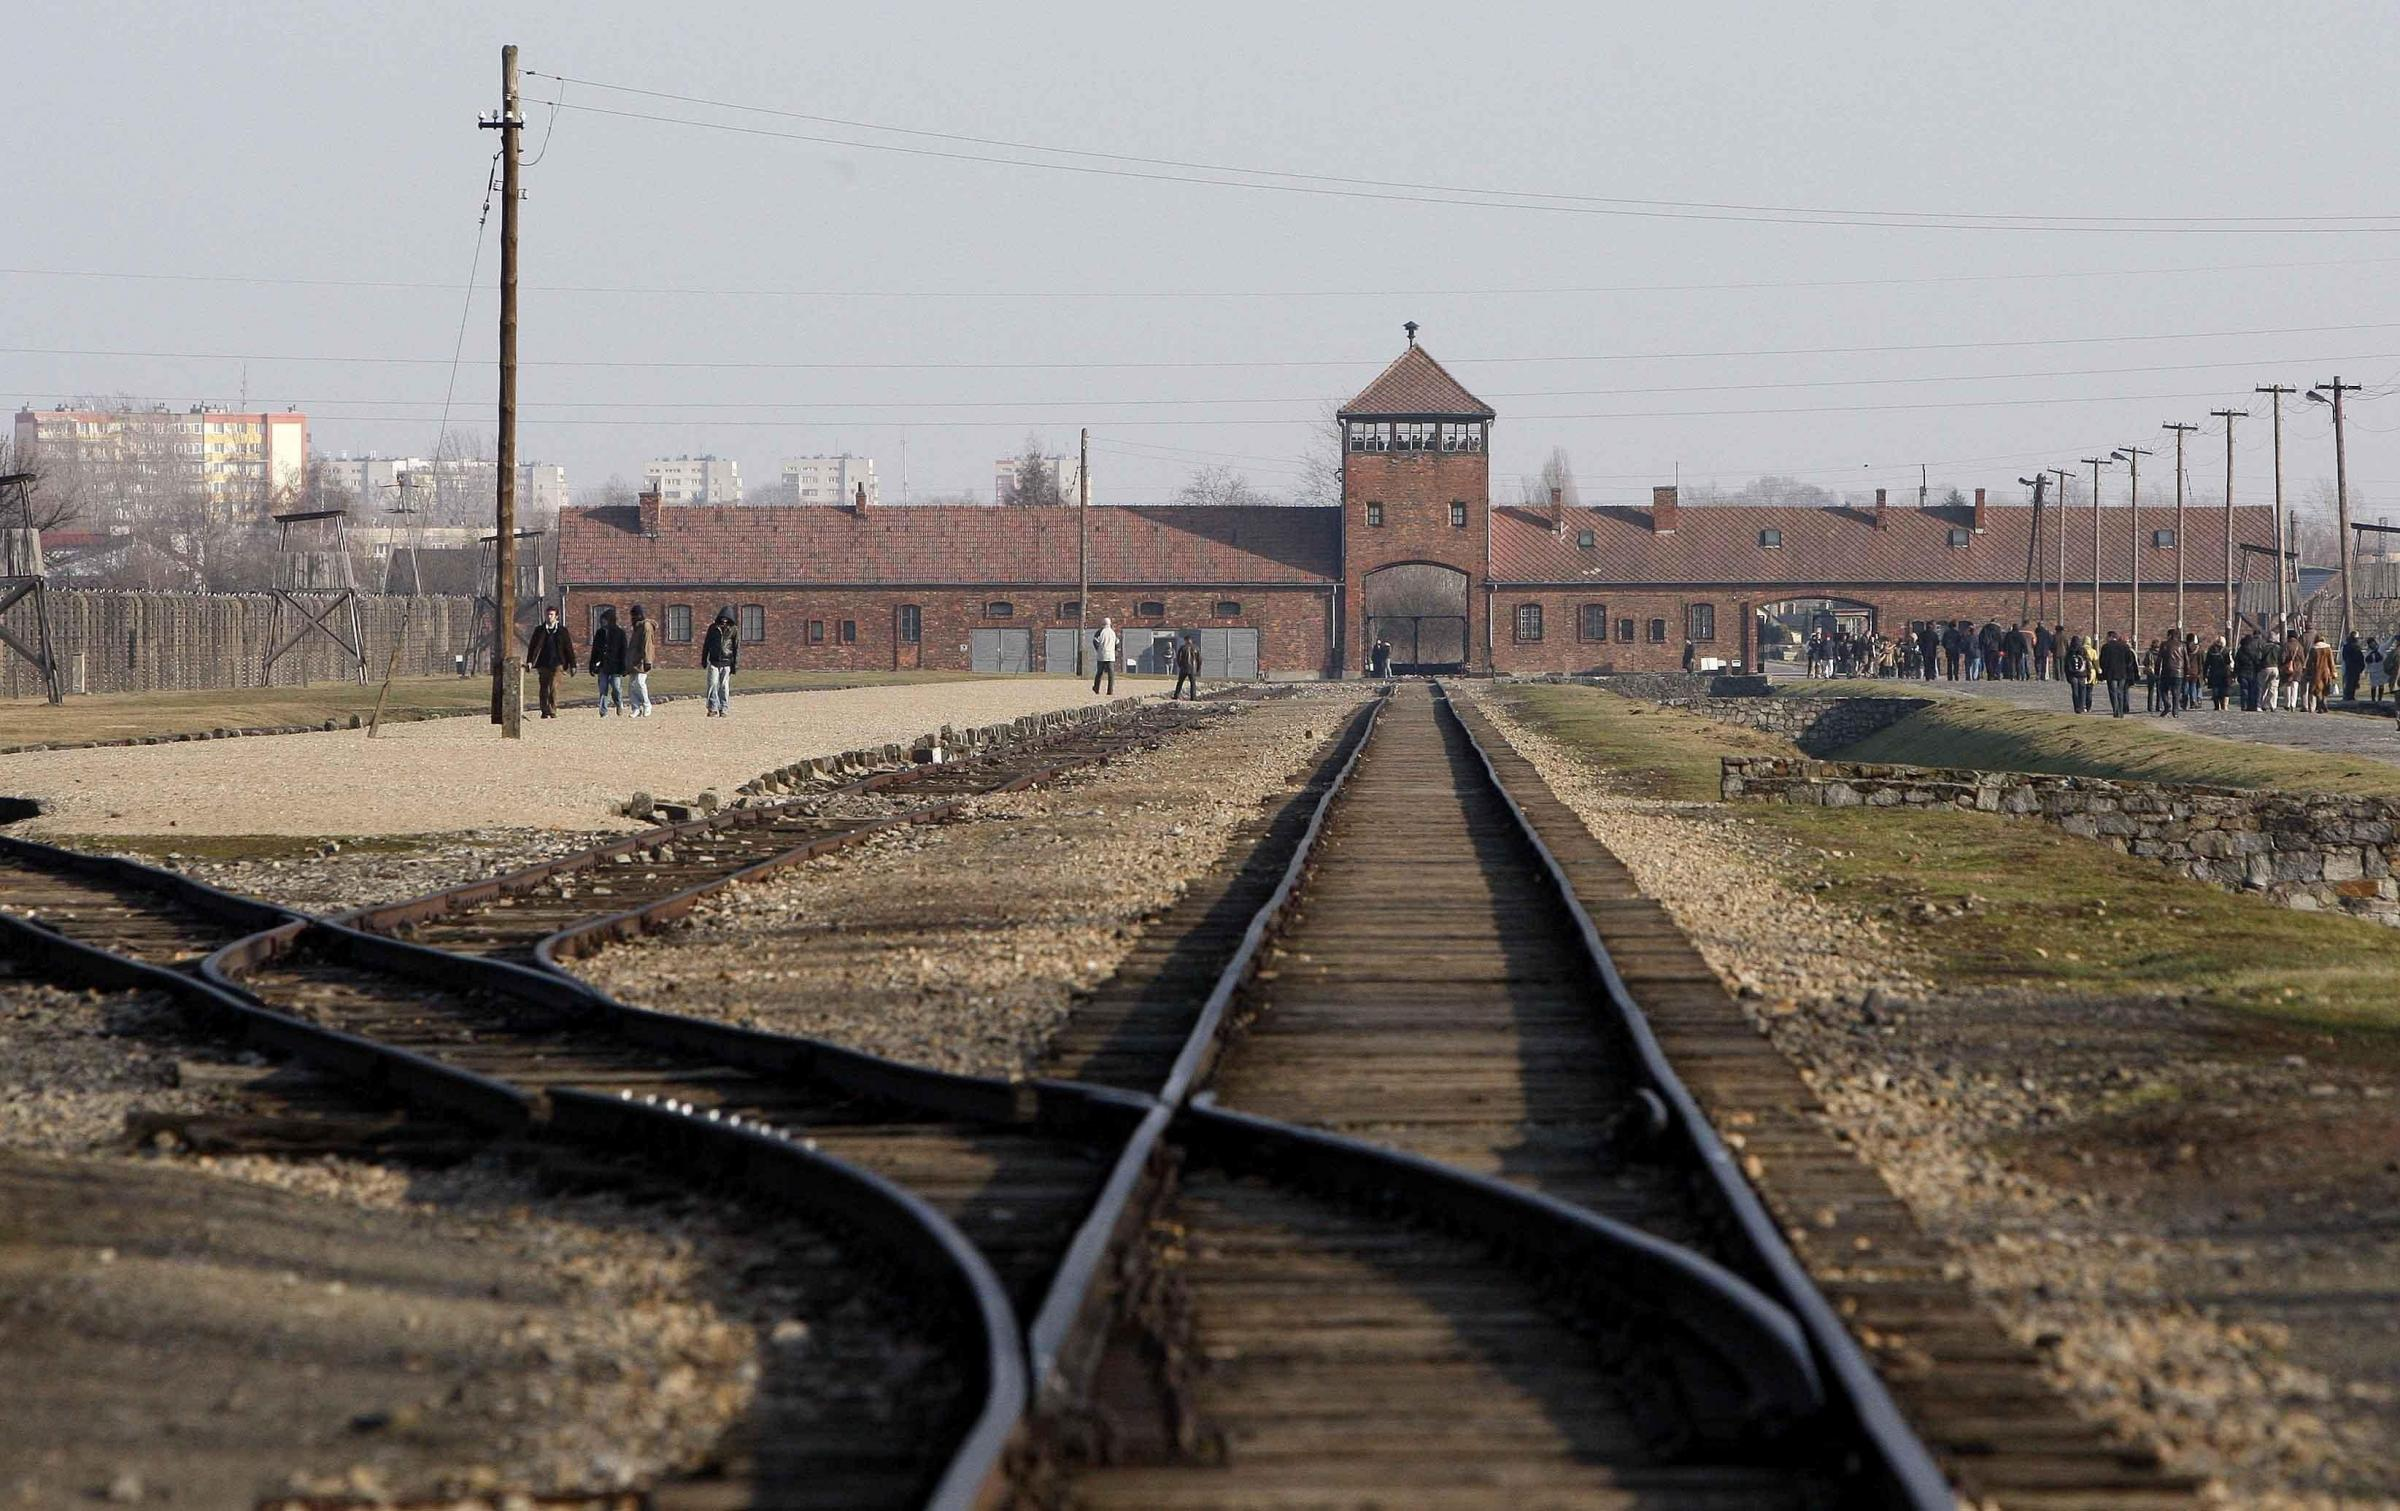 The Auschwitz concentration camp in Poland